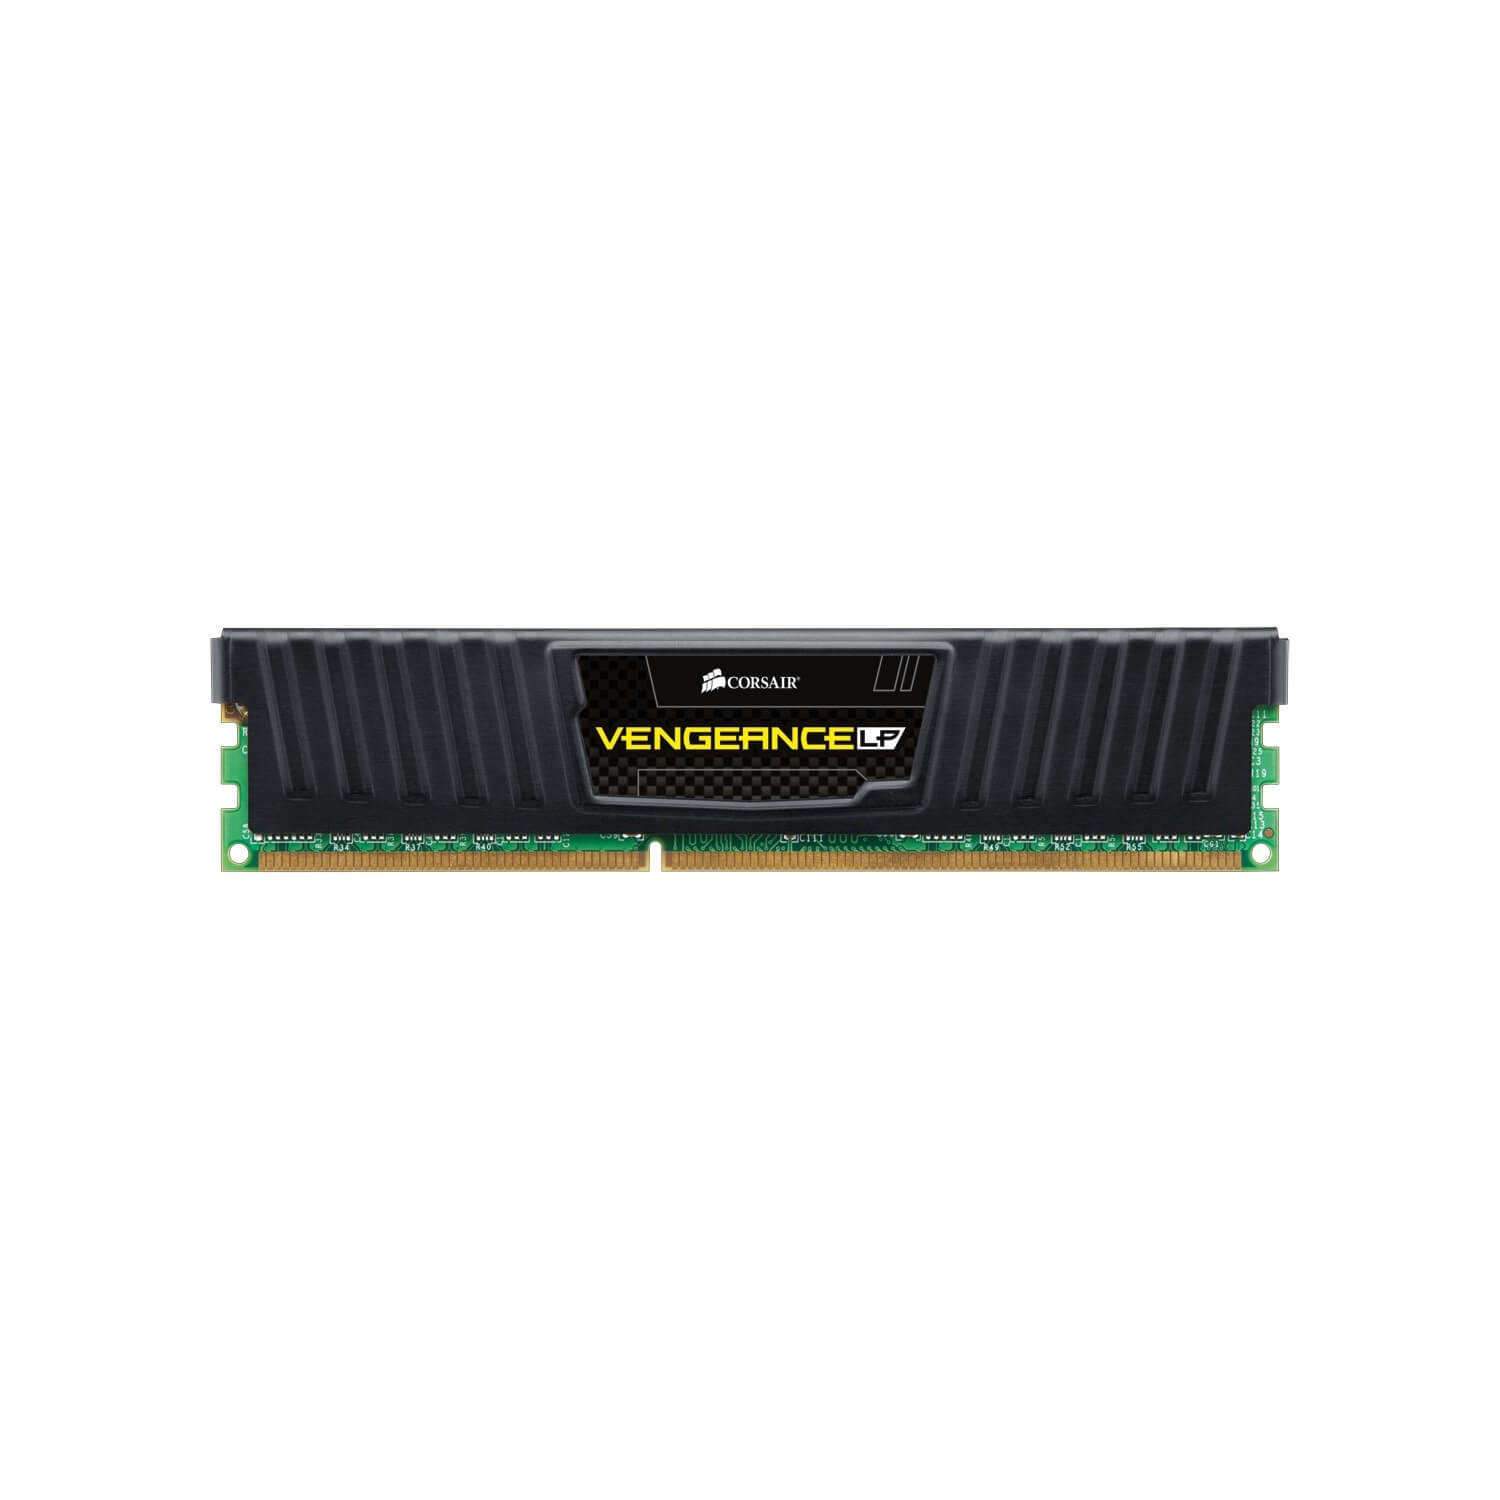 RAM CORSAIR VENGEANCE LP DDR3 4GB 1600 MHz PC